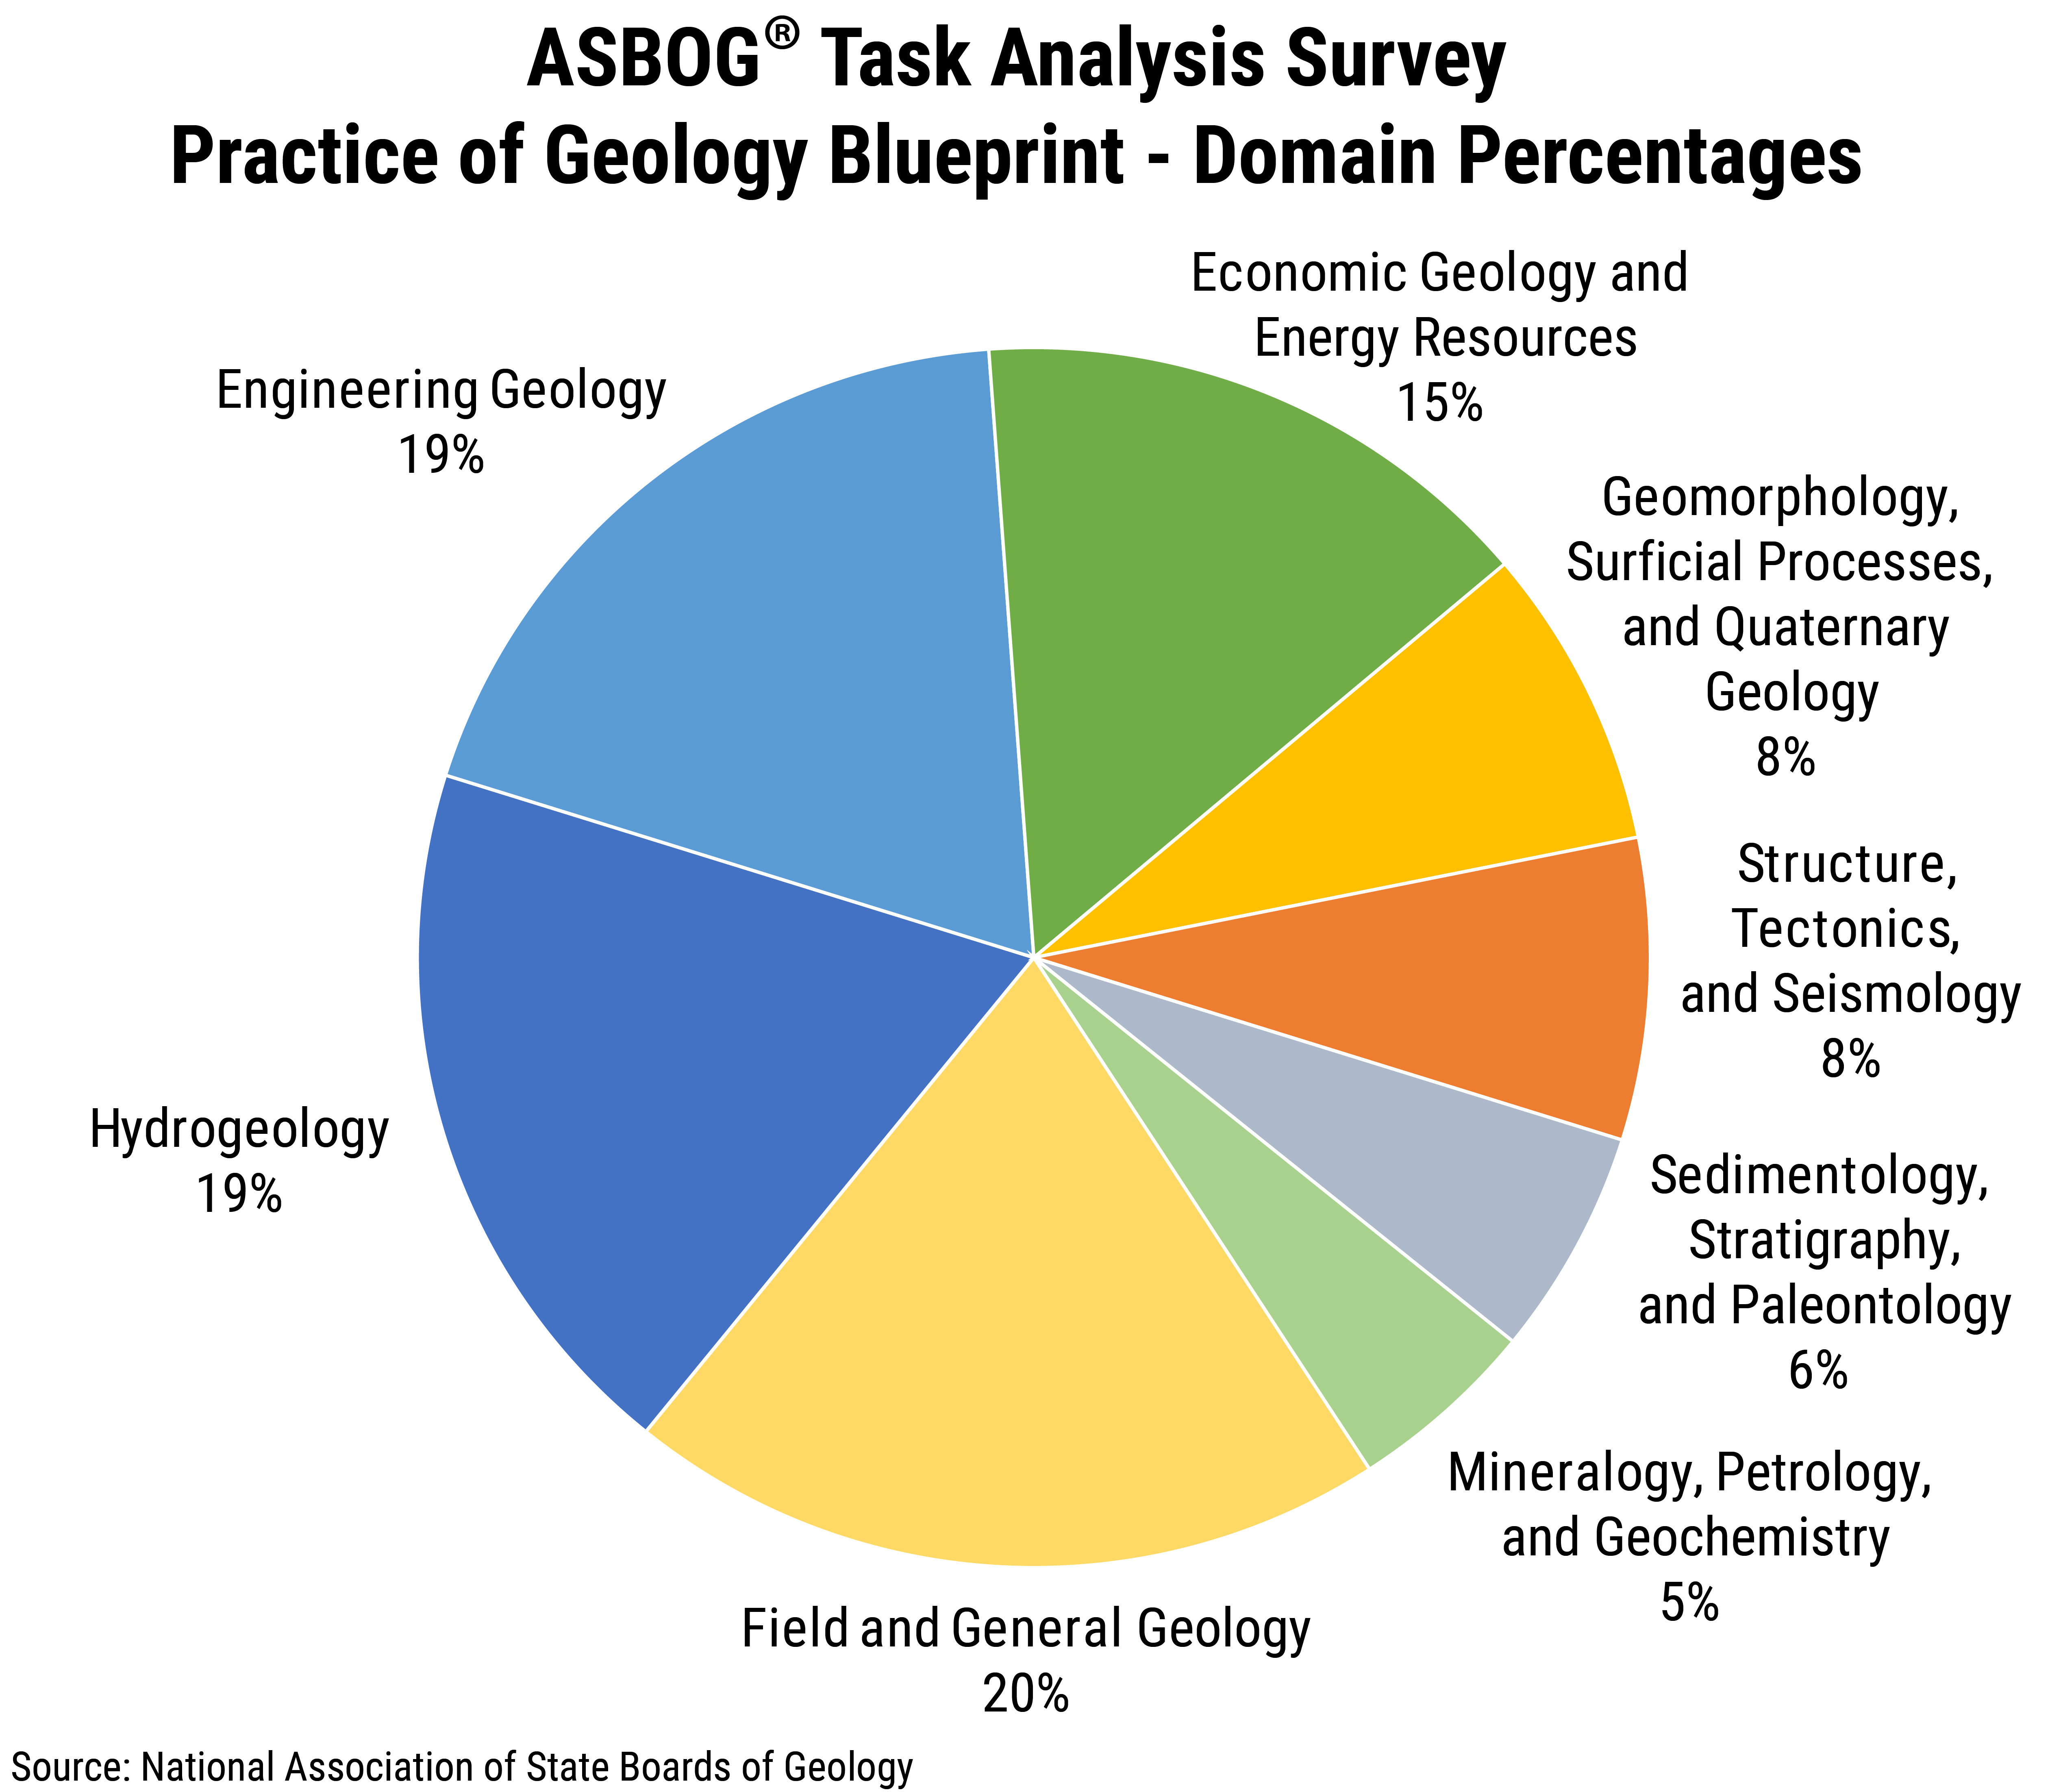 FS_2019-001 chart 2: ASBOG® Task Analysis Survey Practice of Geology Blueprint - Domain Percentages